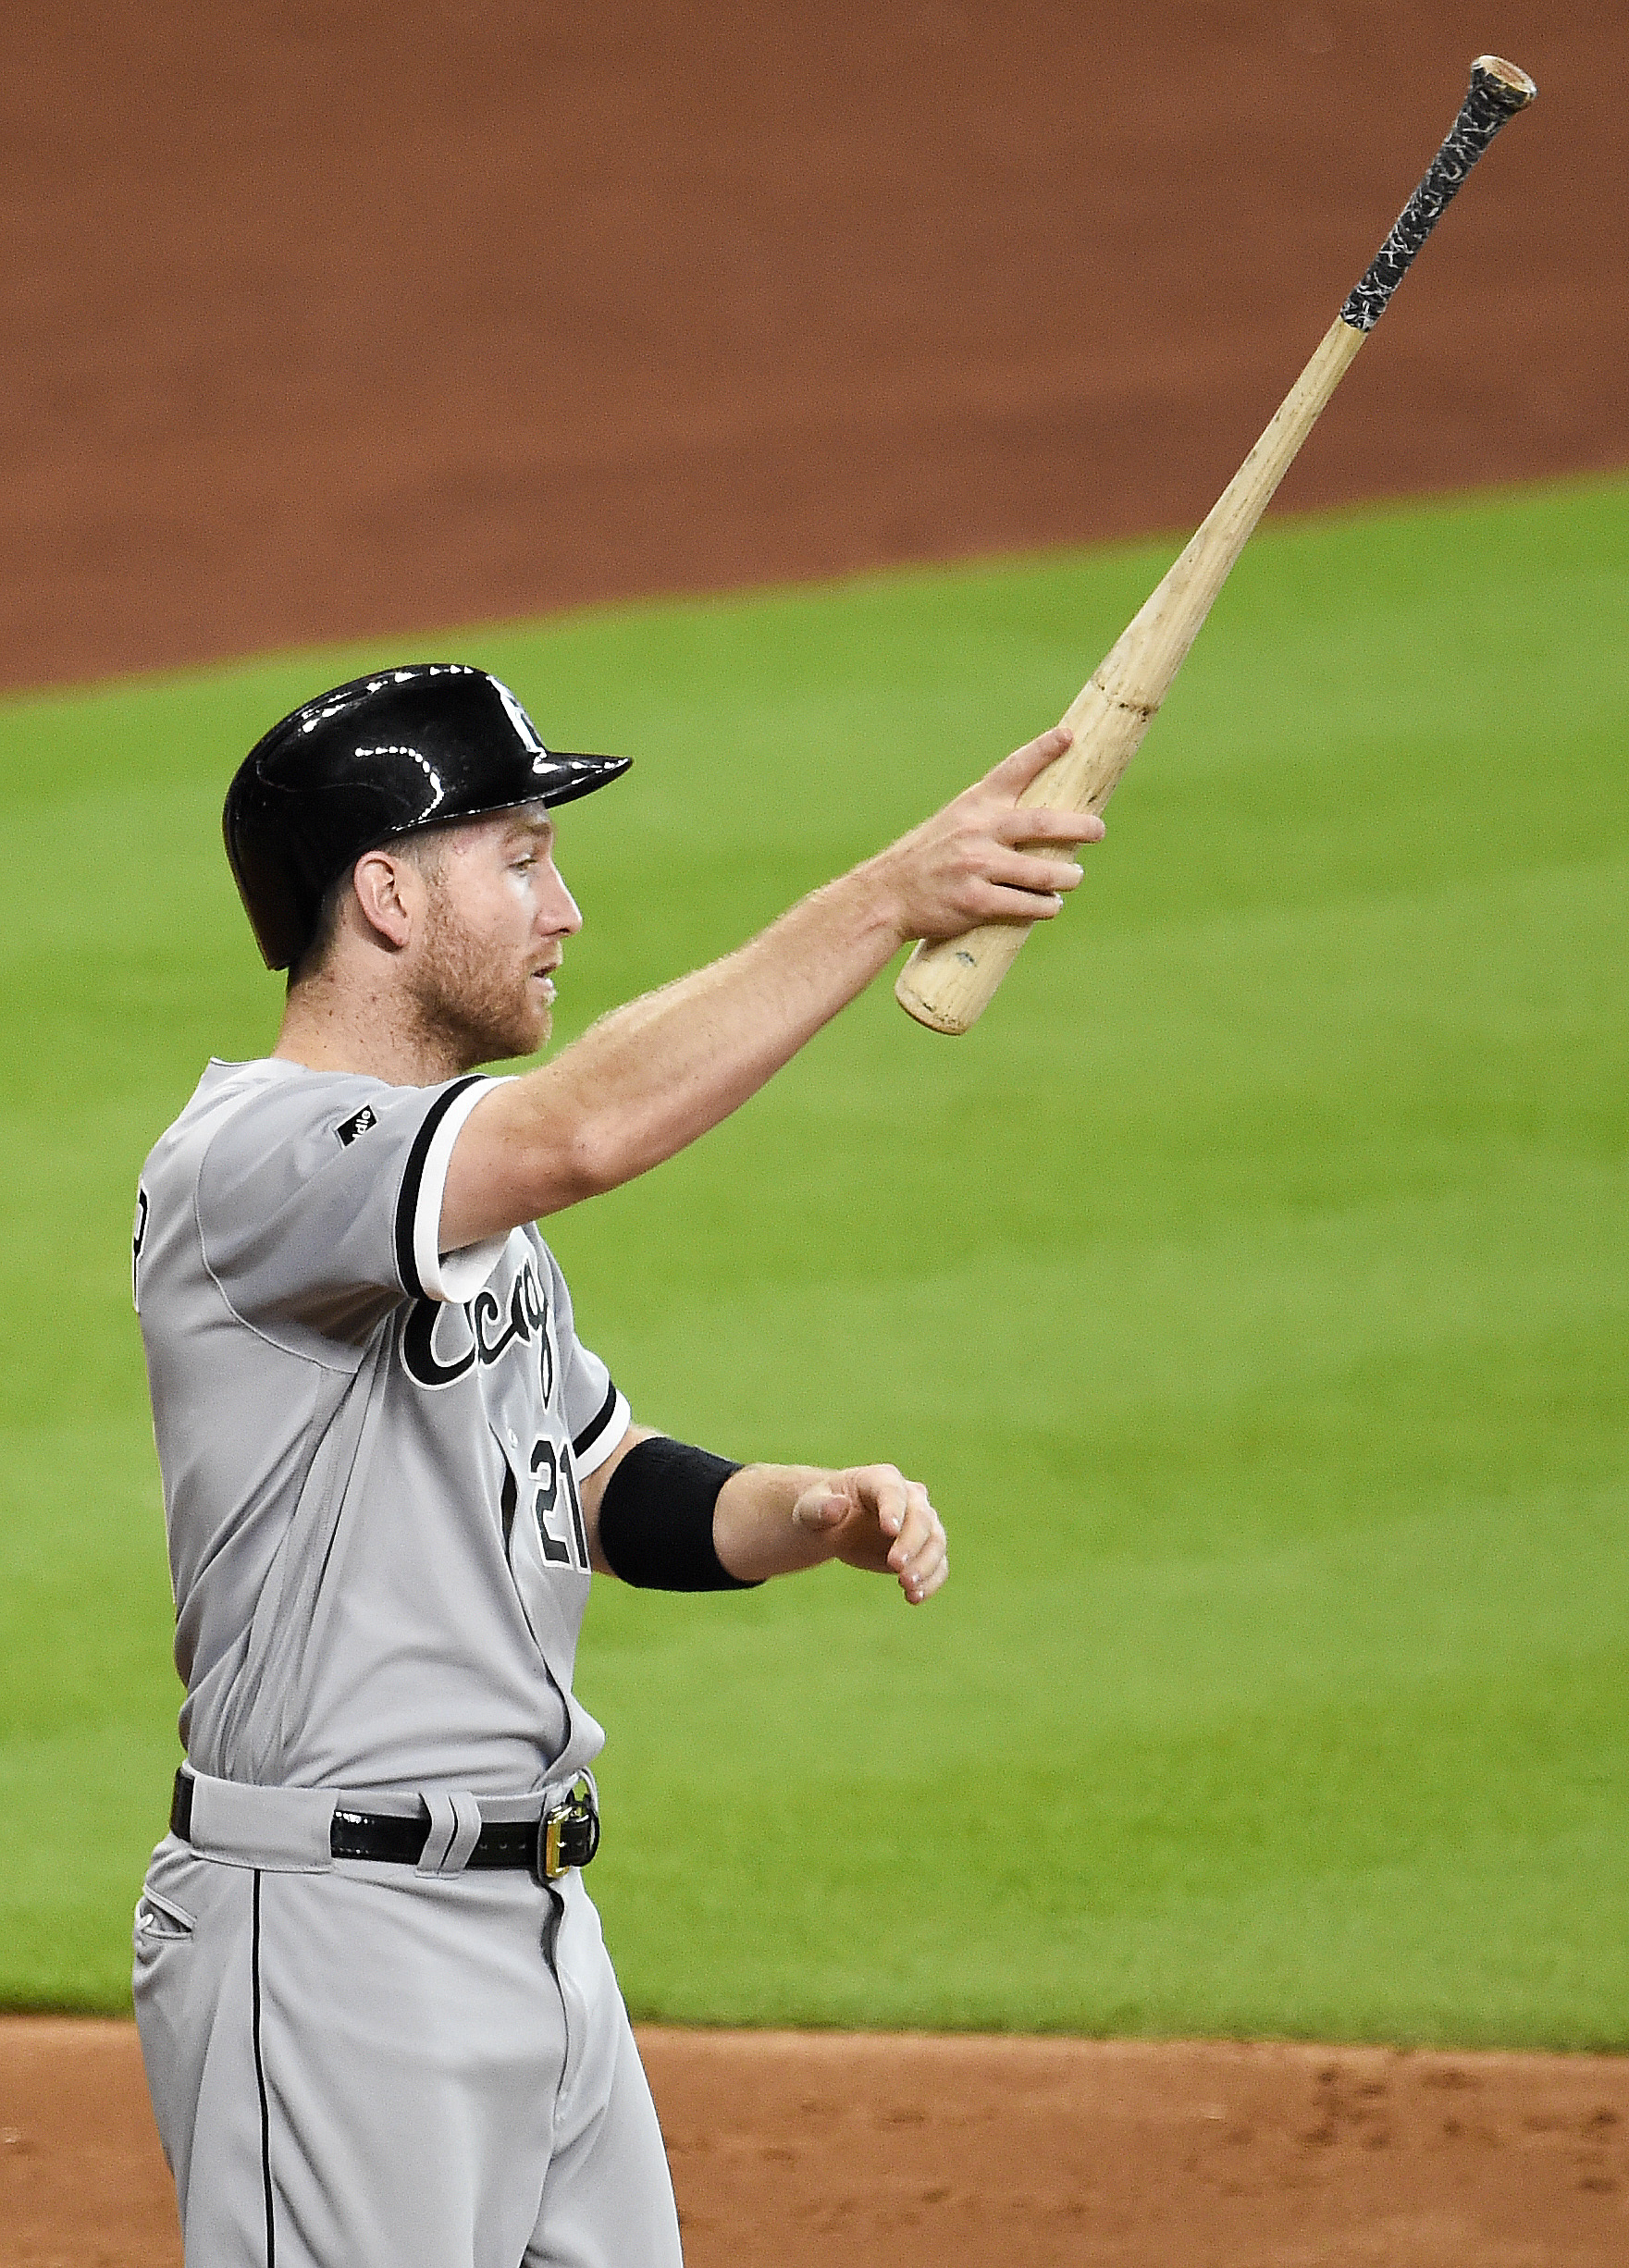 Chicago White Sox's Todd Frazier signals to teammate Dioner Navarro after scoring on Navarro's two-run single in the fifth inning of a baseball game against the Houston Astros, Saturday, July 2, 2016, in Houston. (AP Photo/Eric Christian Smith)